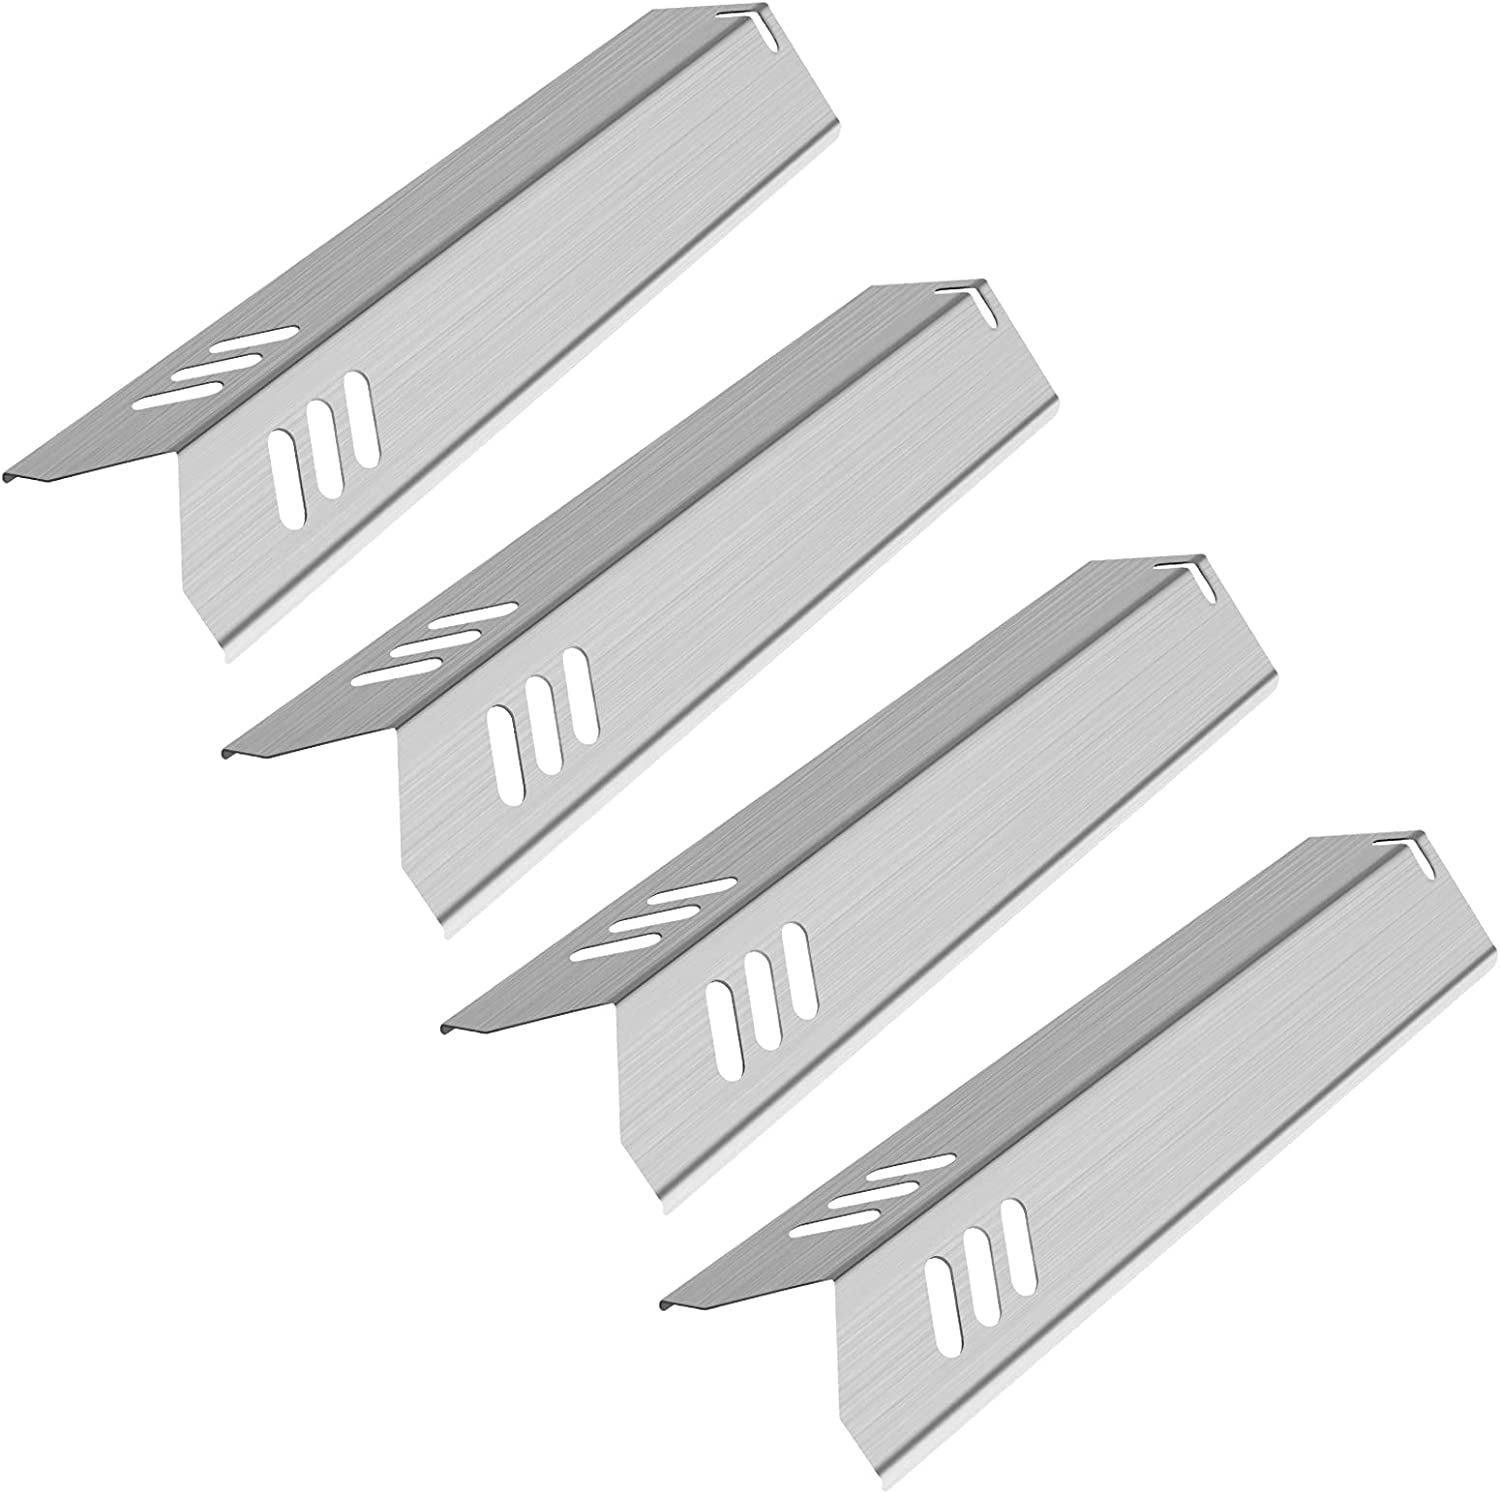 Kalomo 15 Inch Stainless Steel Grill Heat Plates Shield Burner Covers Flame Tamer, BBQ Gas Grill Replacement Parts for Dyna-Glo DGF510SBP, Backyard BY13-101-001-13, Uniflame GBC1059WB, BHG Model, 4Pcs